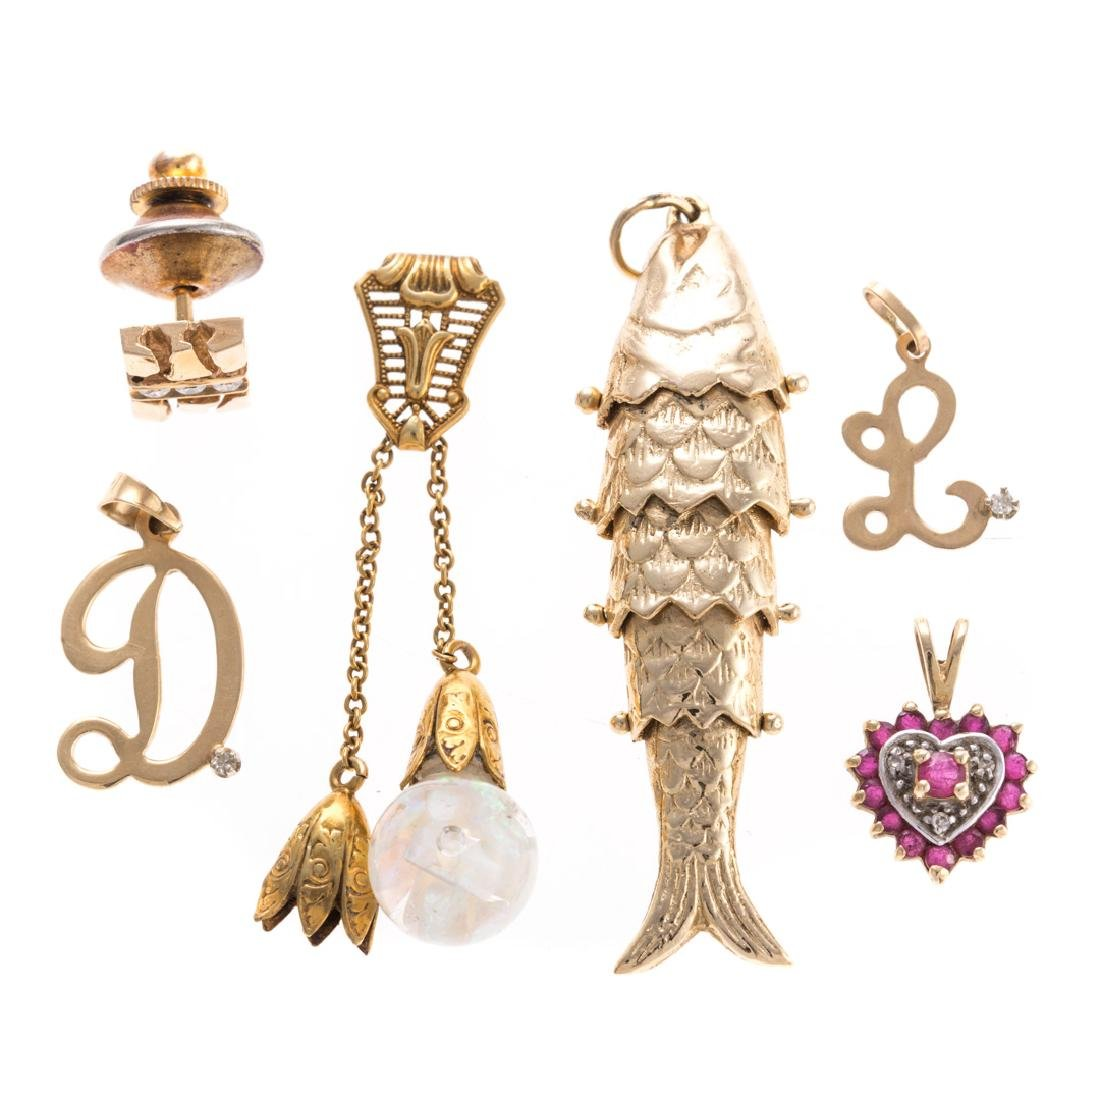 A Collection of Gold Charms & Pendants